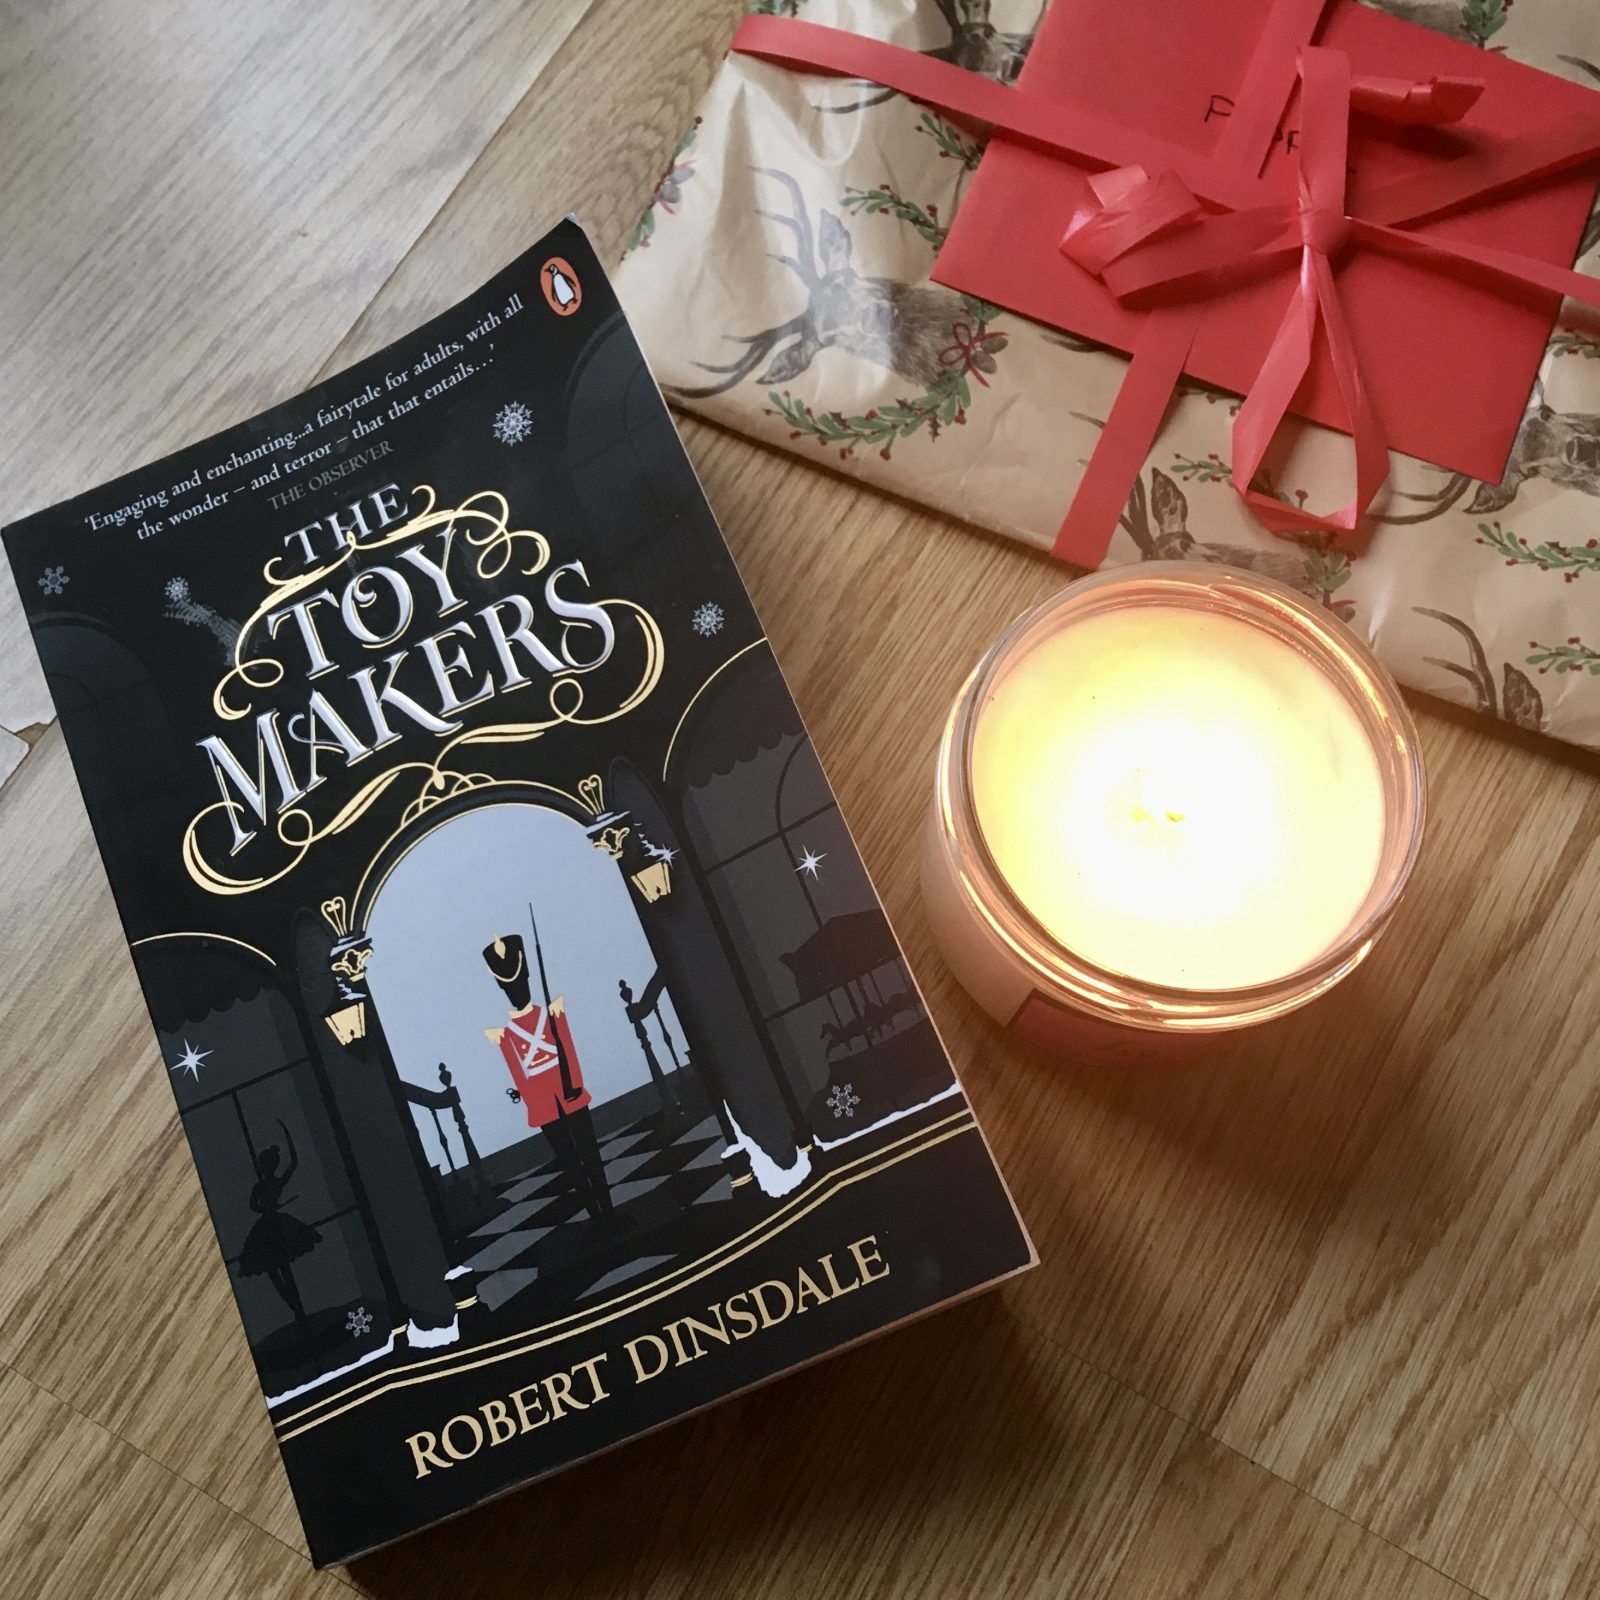 copy of 'the toymakers' on wooden floor, next to lit candle and wrapped christmas present